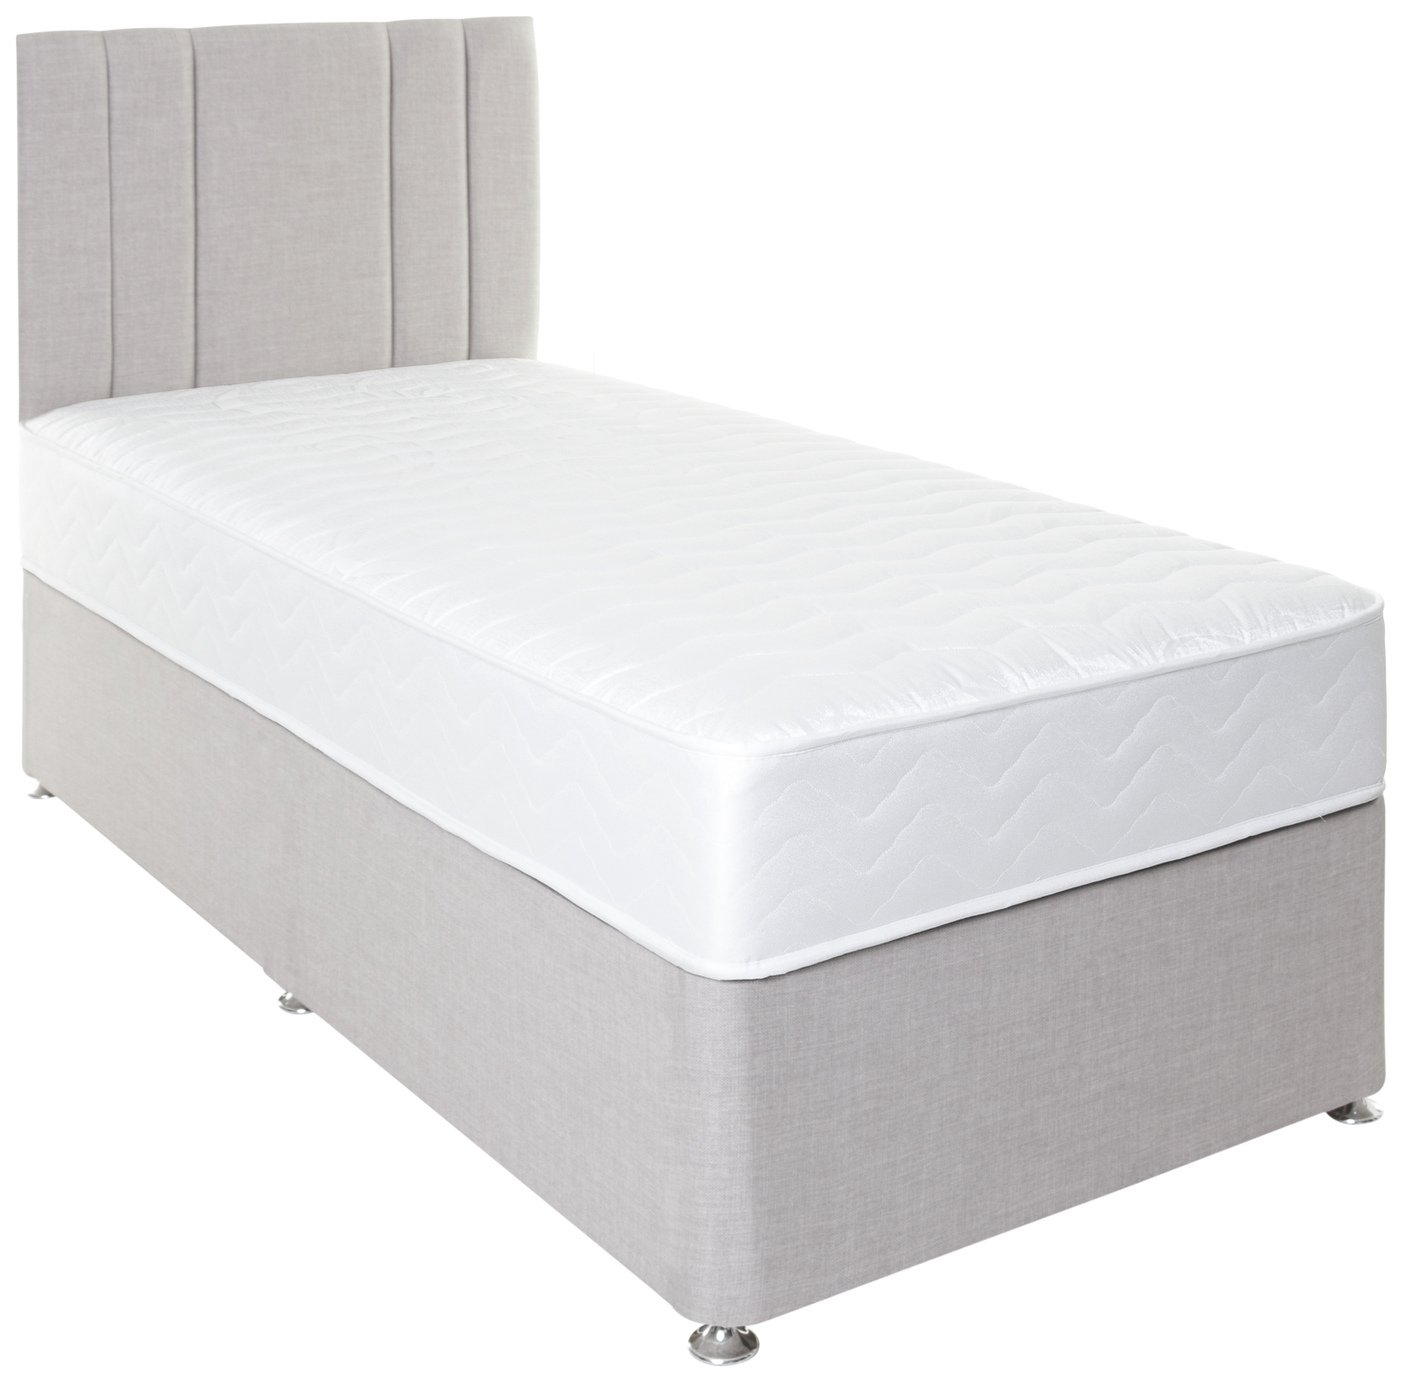 Airsprung Henlow 1200 Pocket Memory Divan Set - Single. at Argos